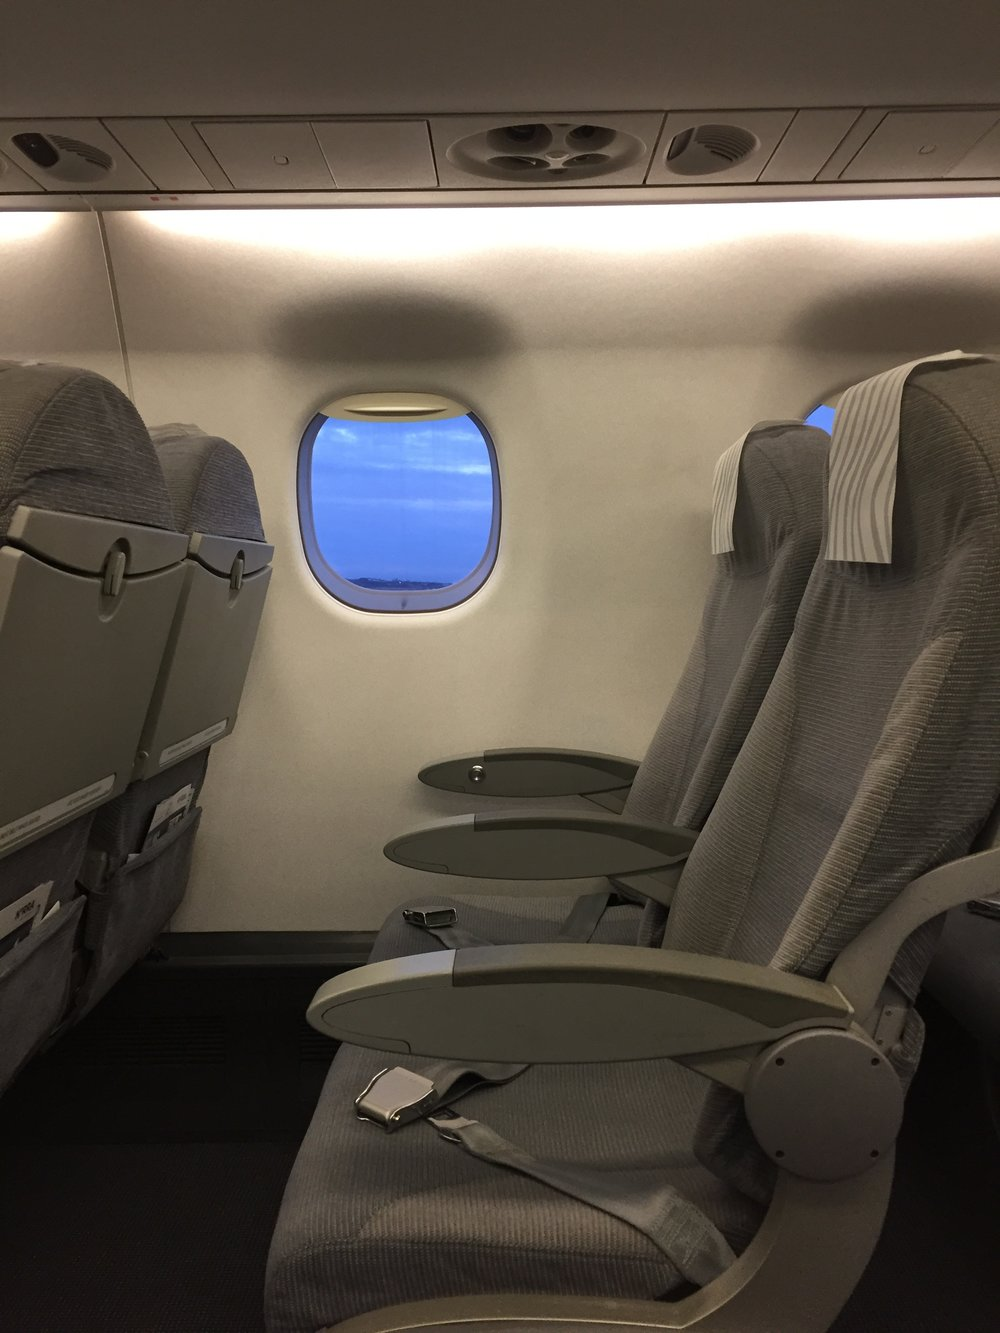 The seats are the same as in economy and I think the seat pitch is the same too, the difference is, thus, in the onboard service (for example, upon entry a flight attendant offered to keep my coat in the wardrobe at the front of the cabin), the food and the priority boarding and lounge